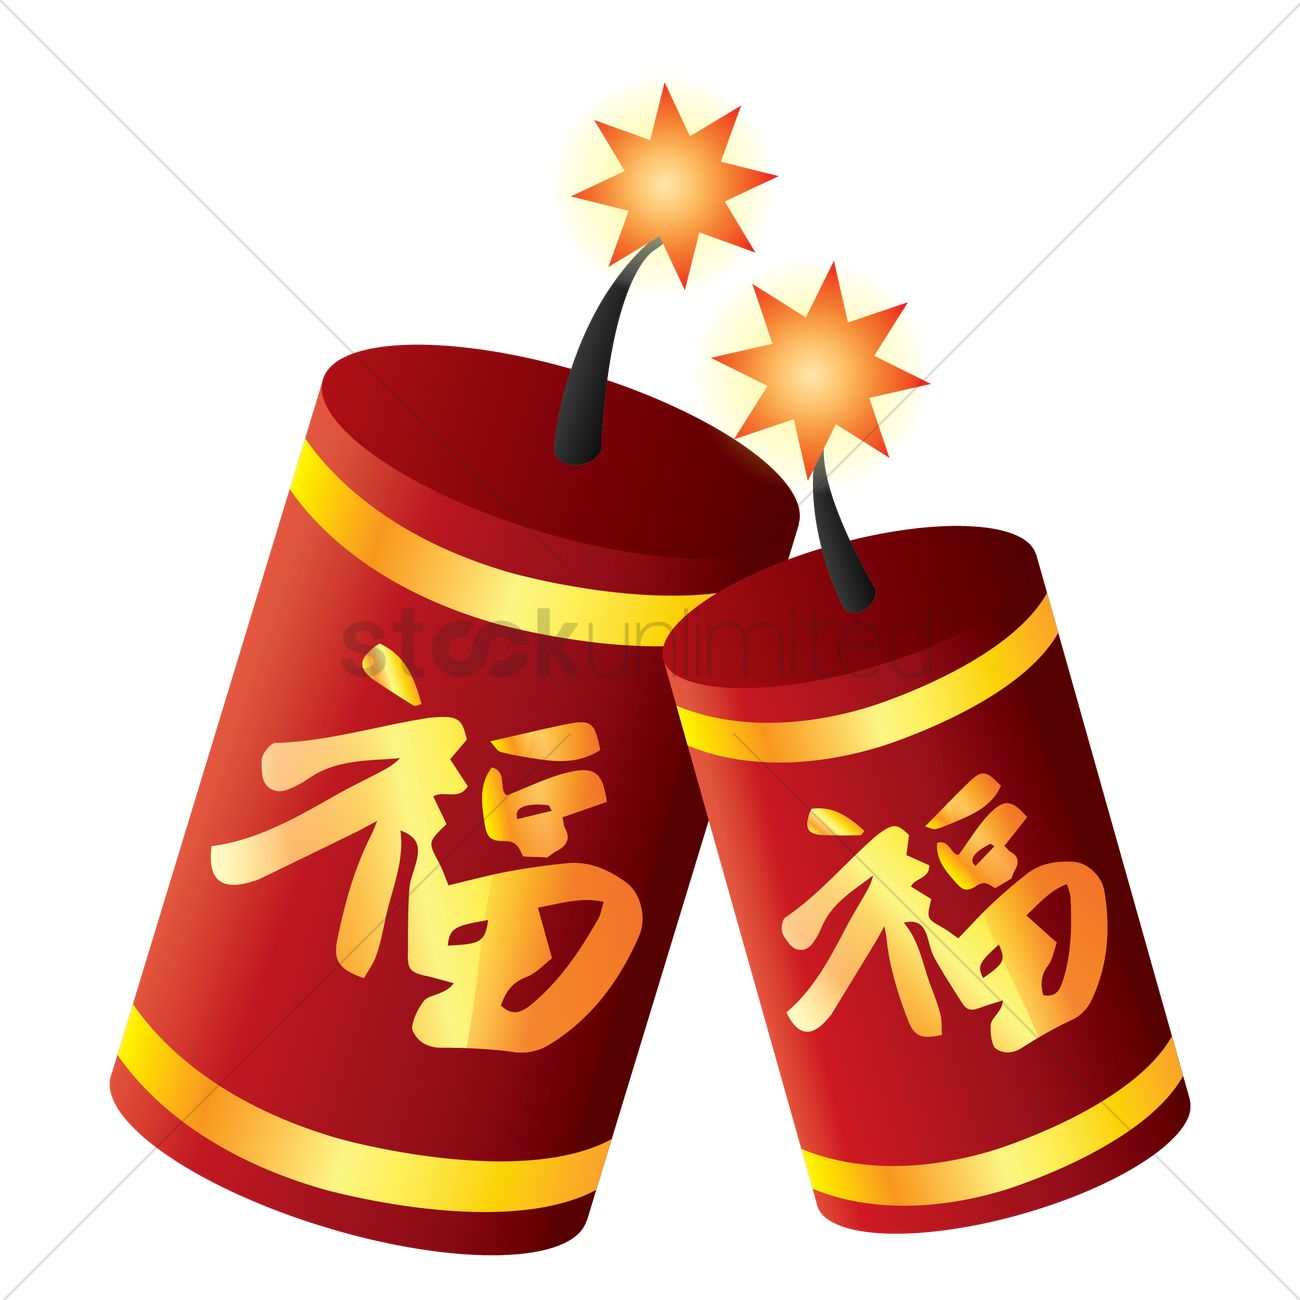 chinese clipart at getdrawings com free for personal use chinese rh getdrawings com free chinese new year clipart 2018